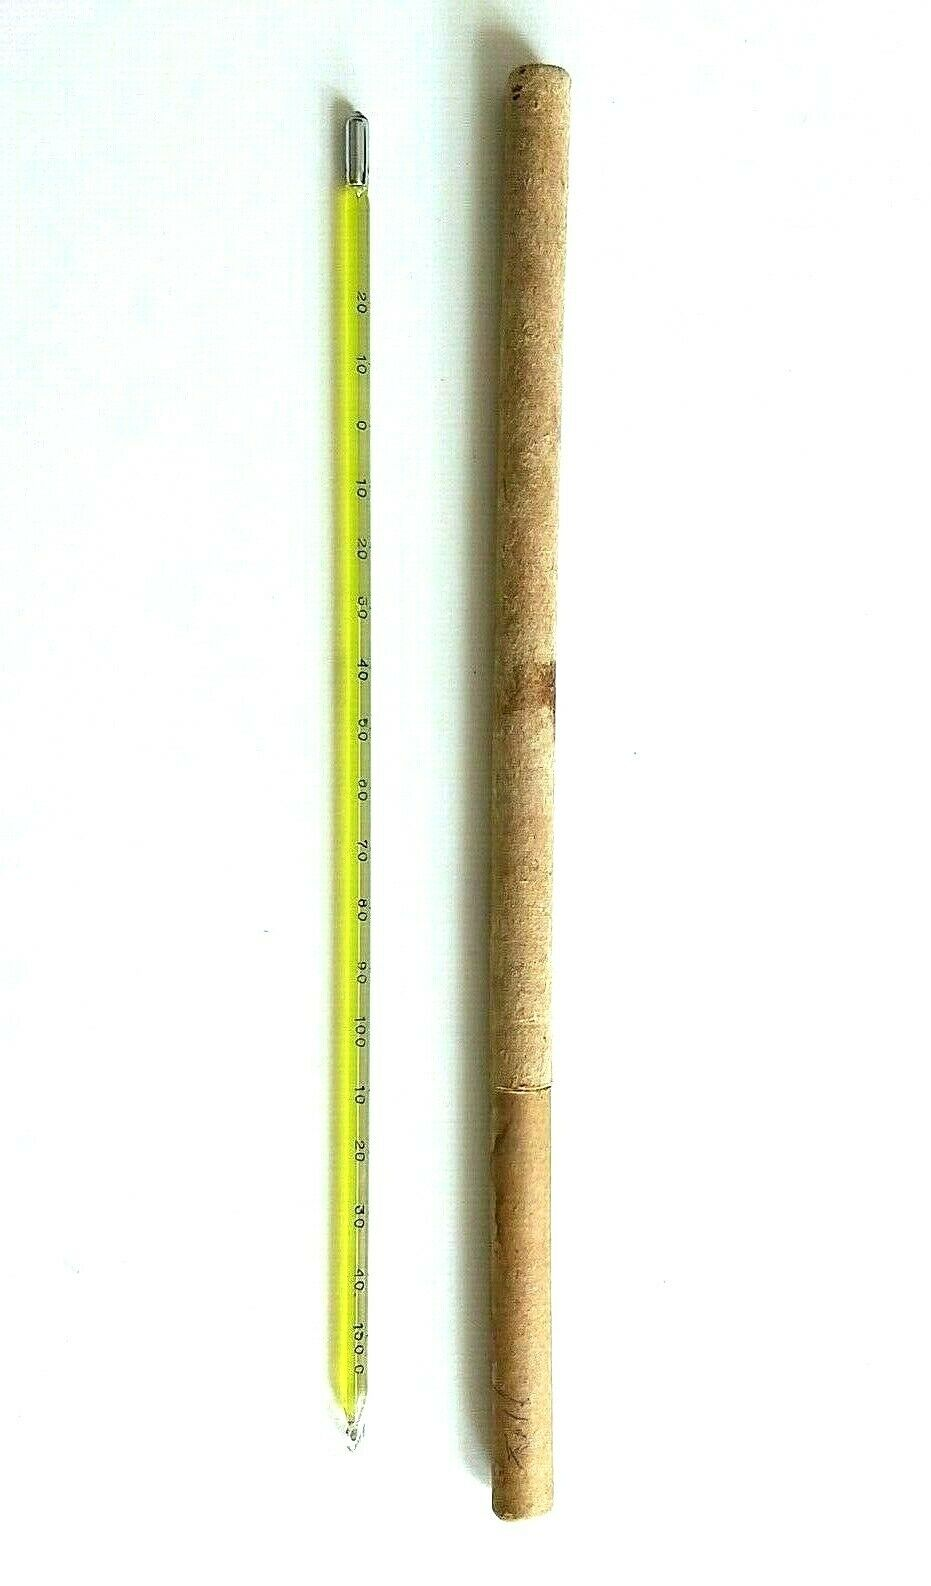 Vintage Glass Thermometer / Hydrometer Device Tool Madad & Case Made in Israel